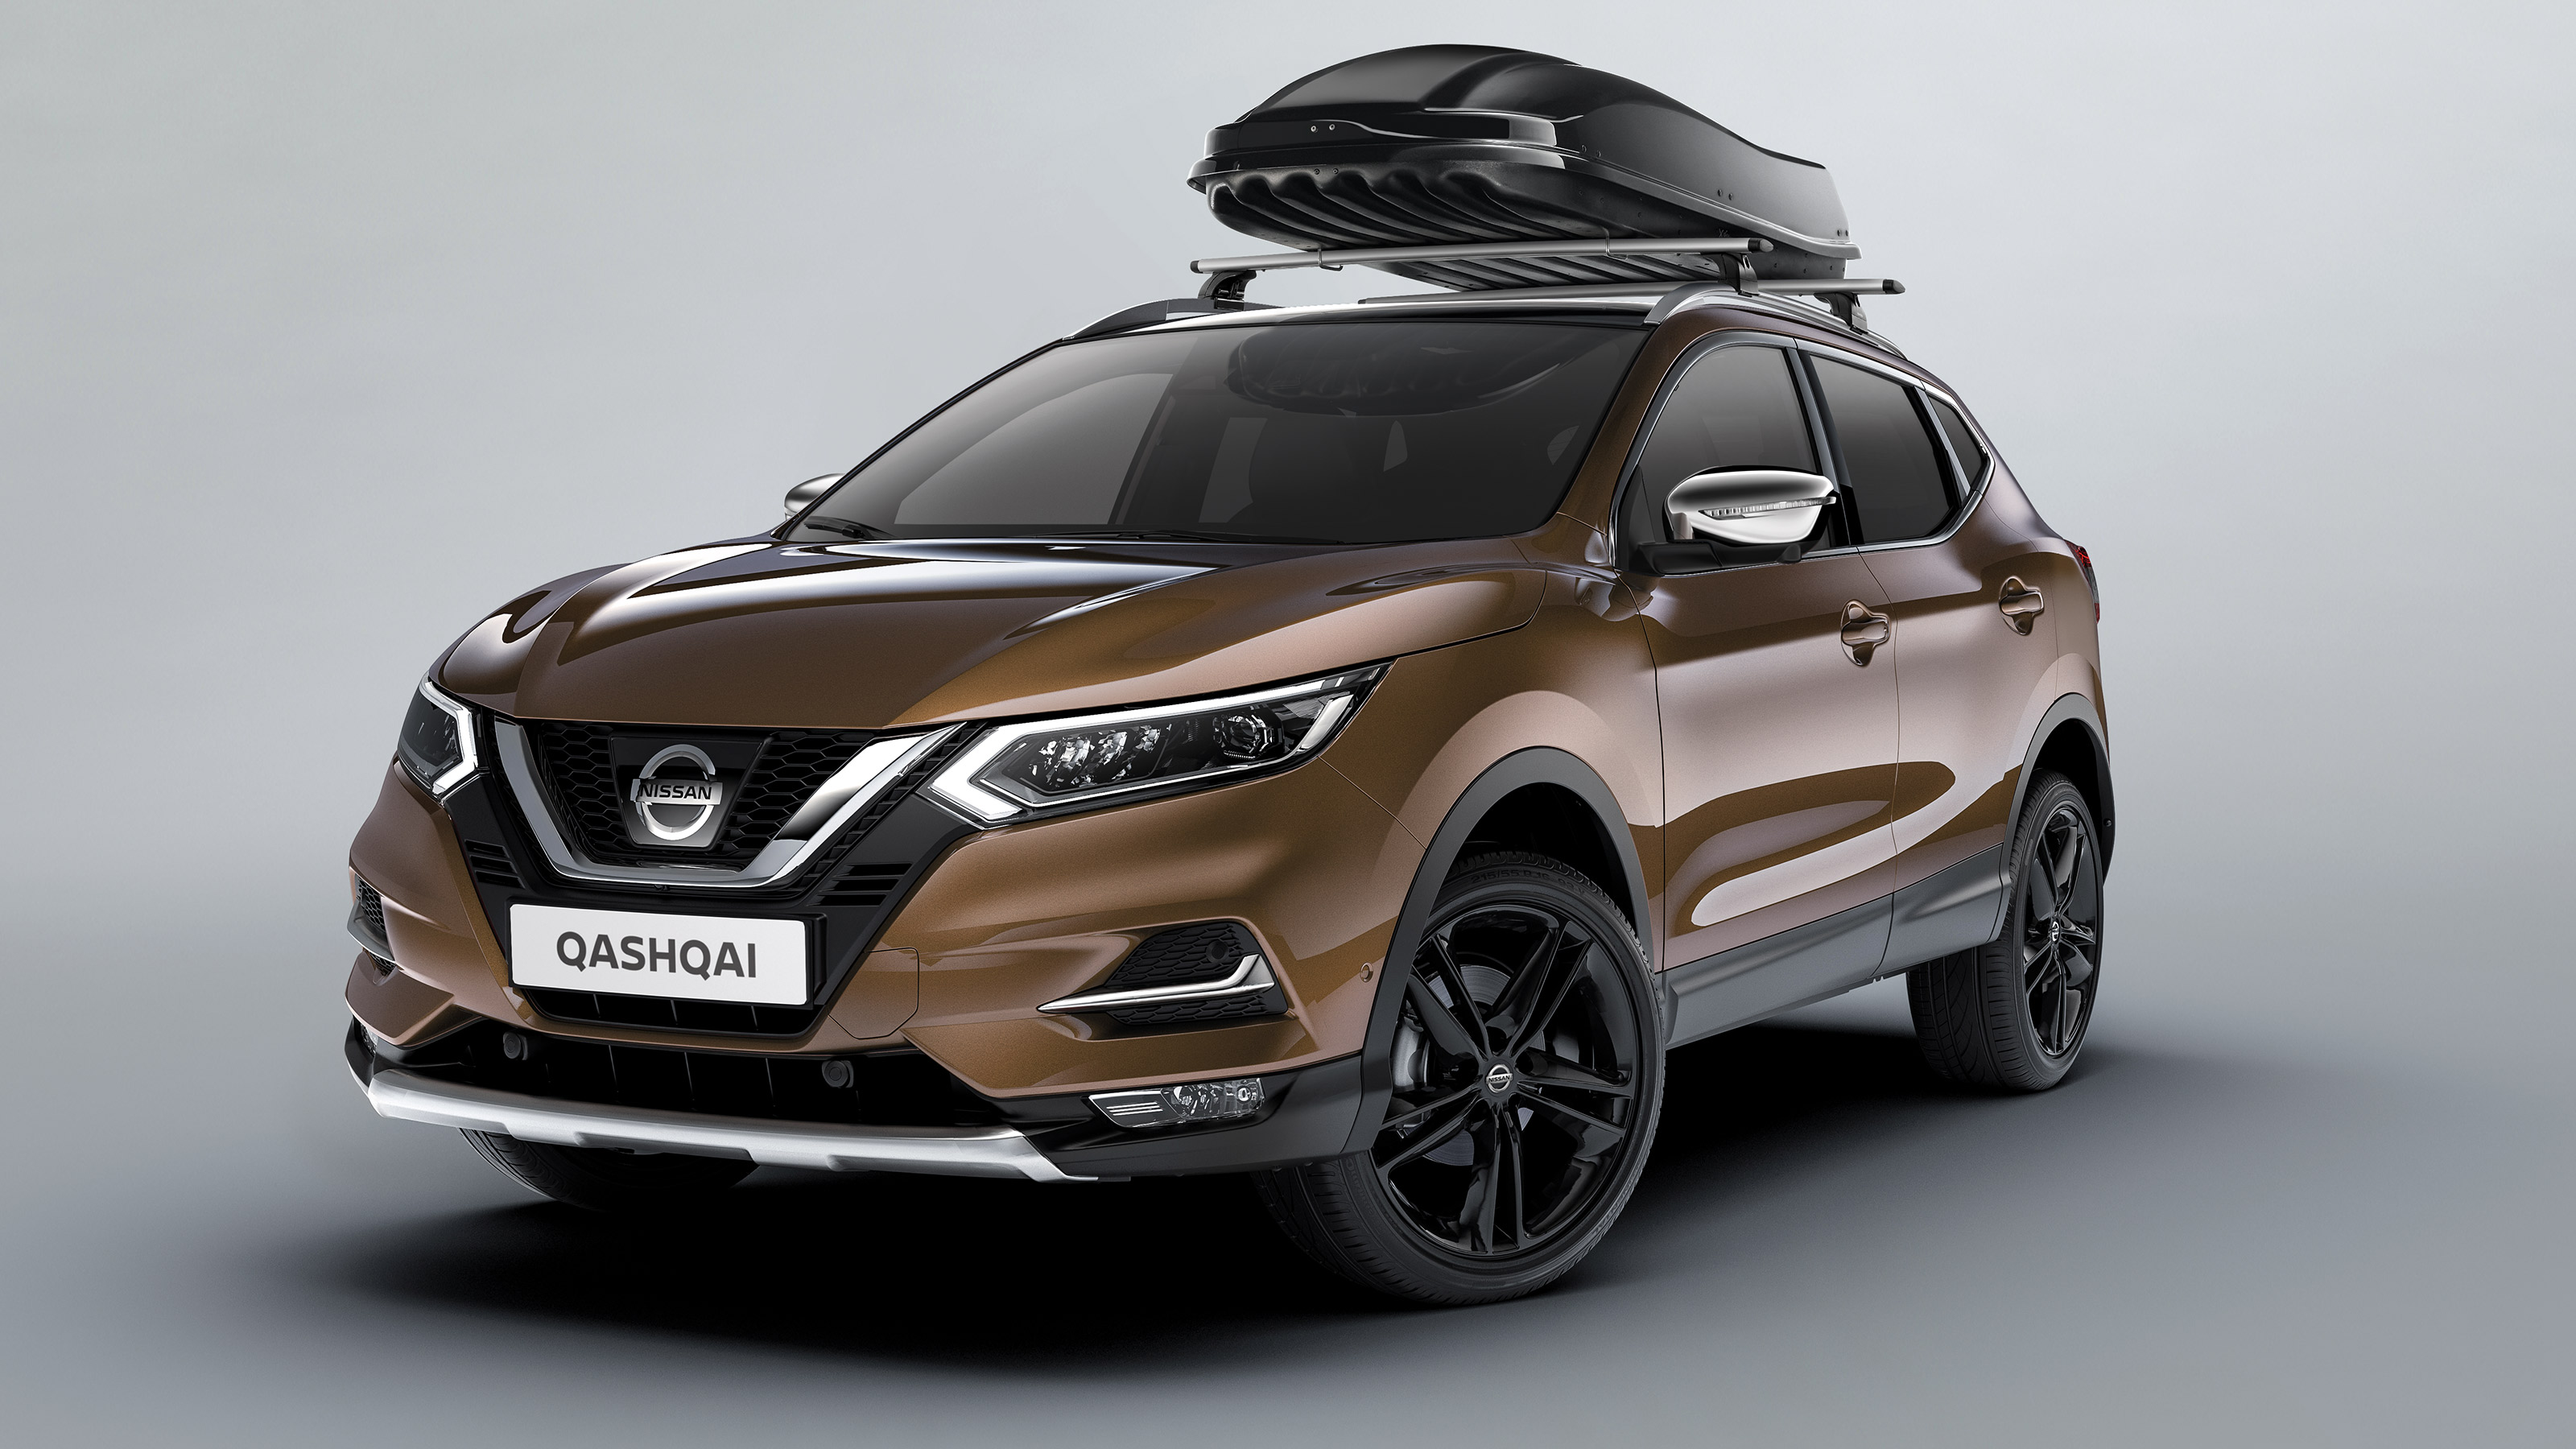 nissan qashqai suv crossovery nissan. Black Bedroom Furniture Sets. Home Design Ideas